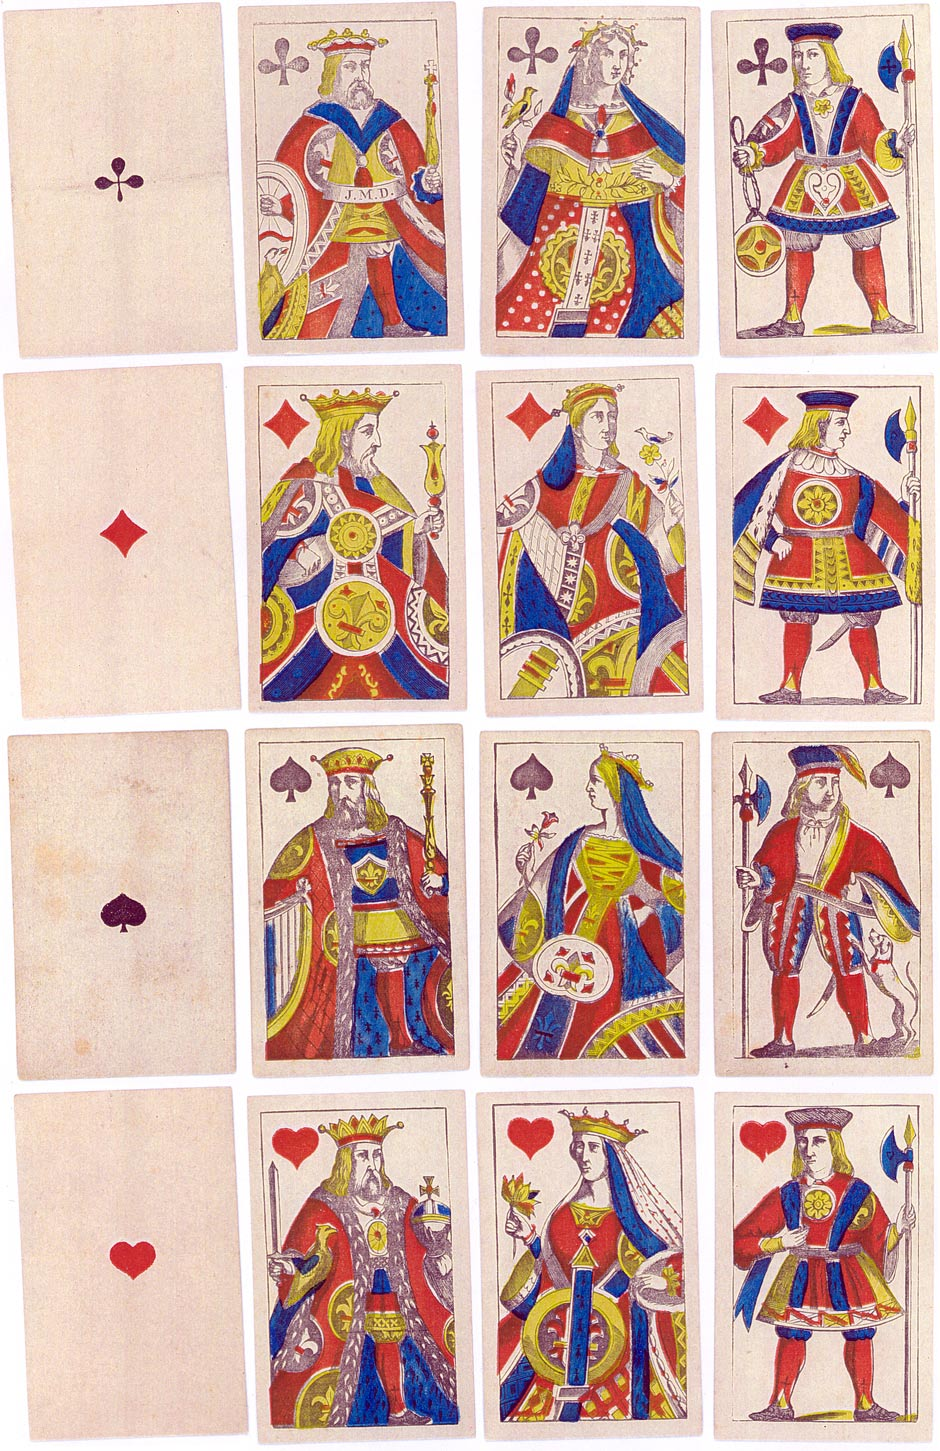 Piquet playing-cards made by J. Müller, Diessenhofen, c.1850-60